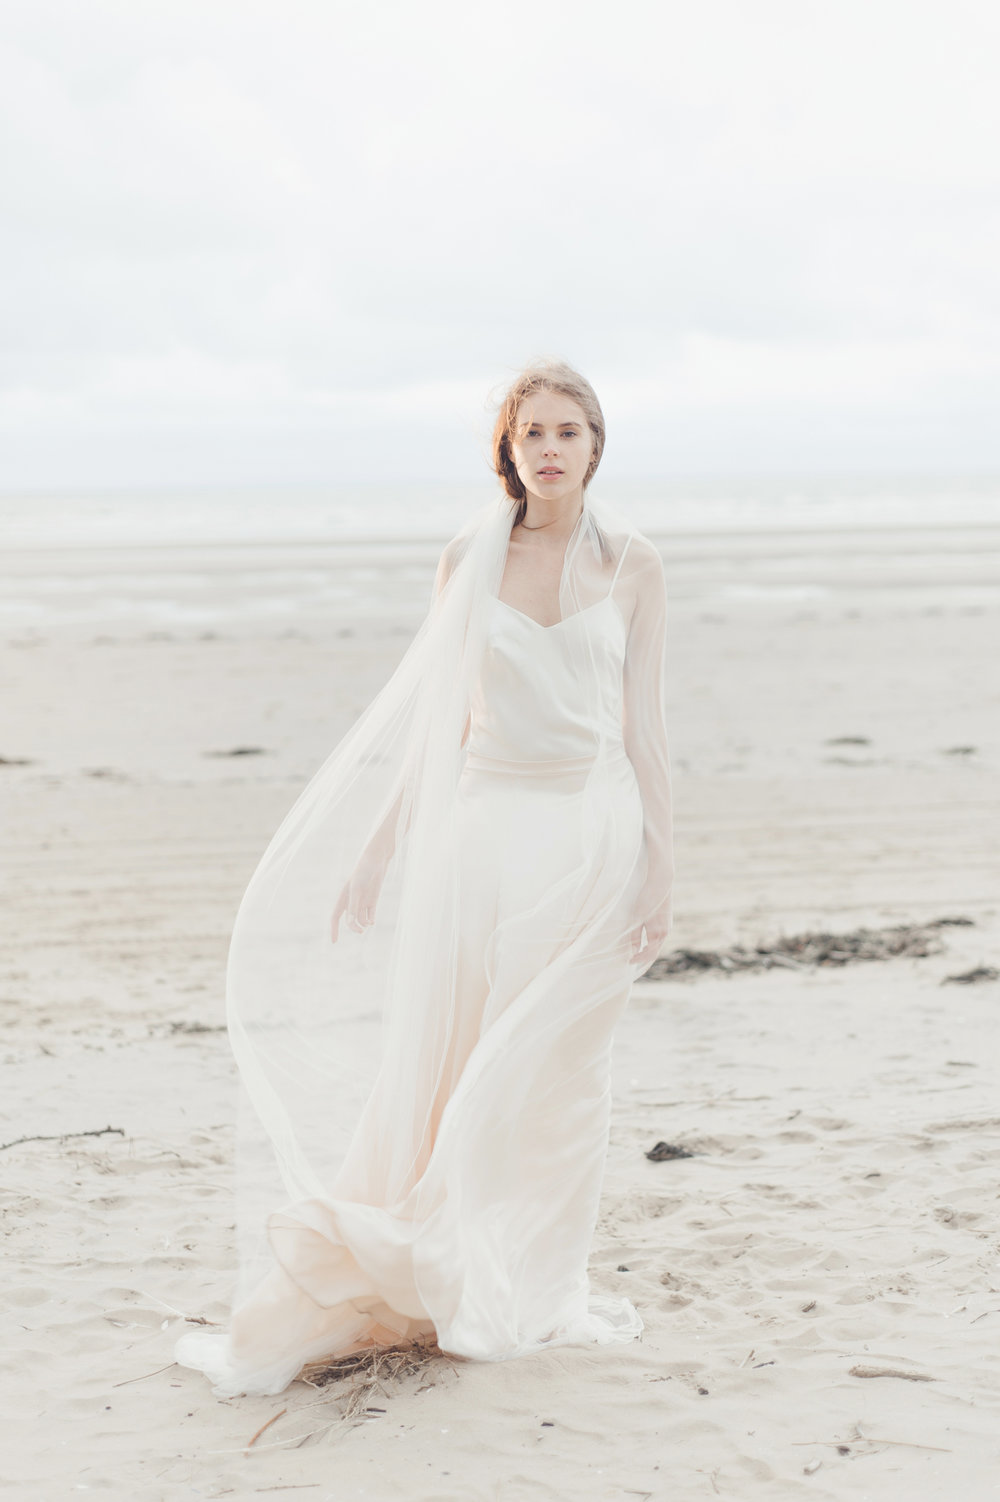 Kate-Beaumont-Wedding-Dresses-Formby-Beach-Emma-Pilkington-45.jpg